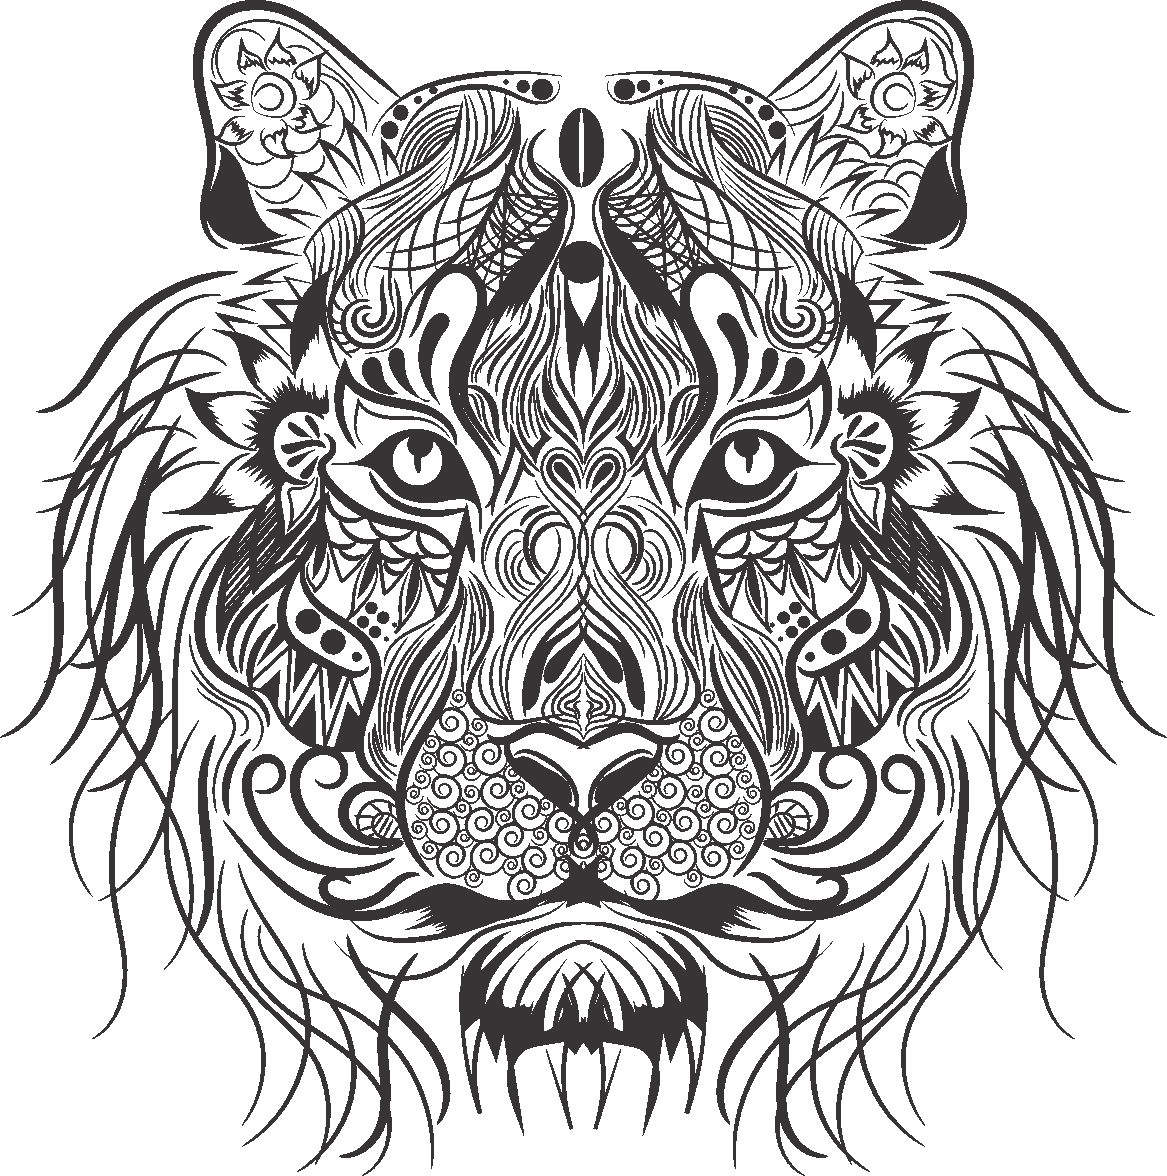 Tigers drawing symmetrical. Tiger lionhead rabbit whiskers